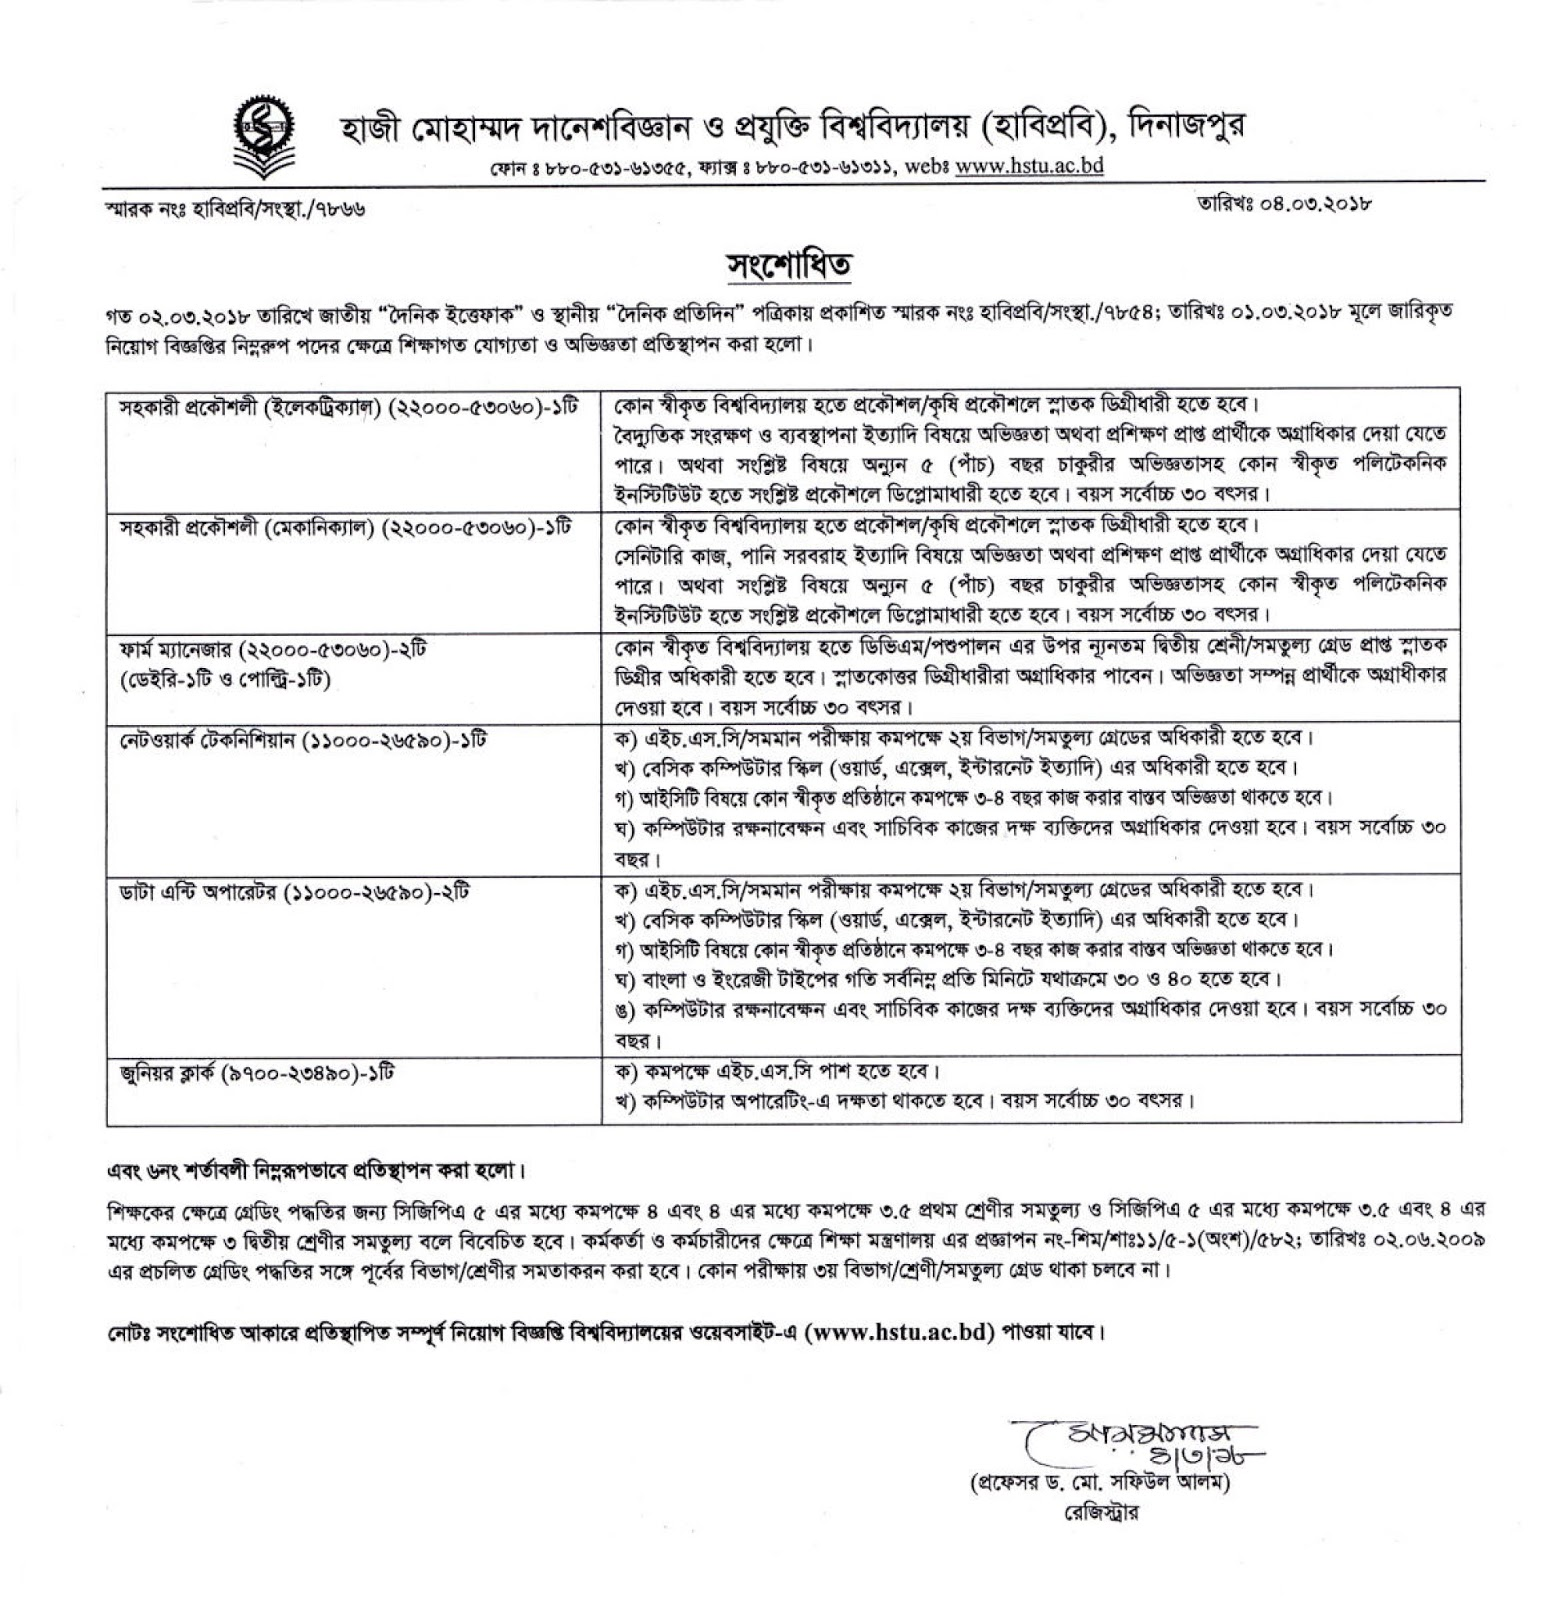 HSTU Job Revised Circular 2018